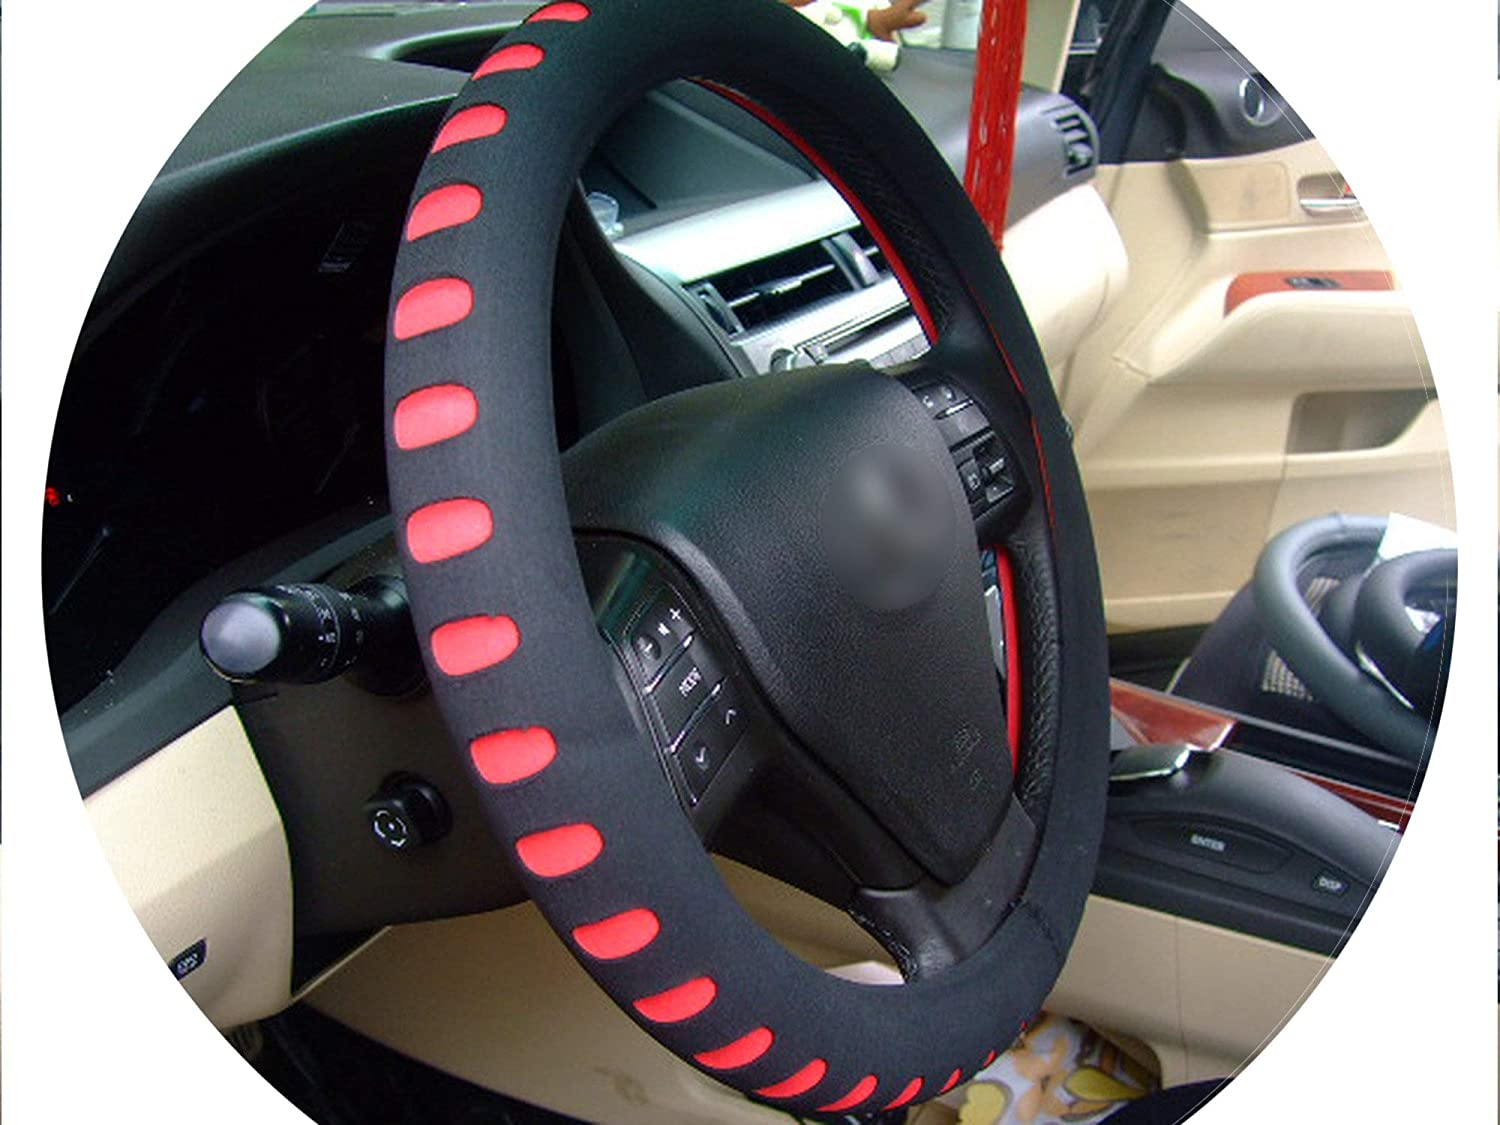 amazon com eva punching red car steering wheel cover 38cm universalamazon com eva punching red car steering wheel cover 38cm universal auto steering wheel covers car interior accessories,red sports \u0026 outdoors